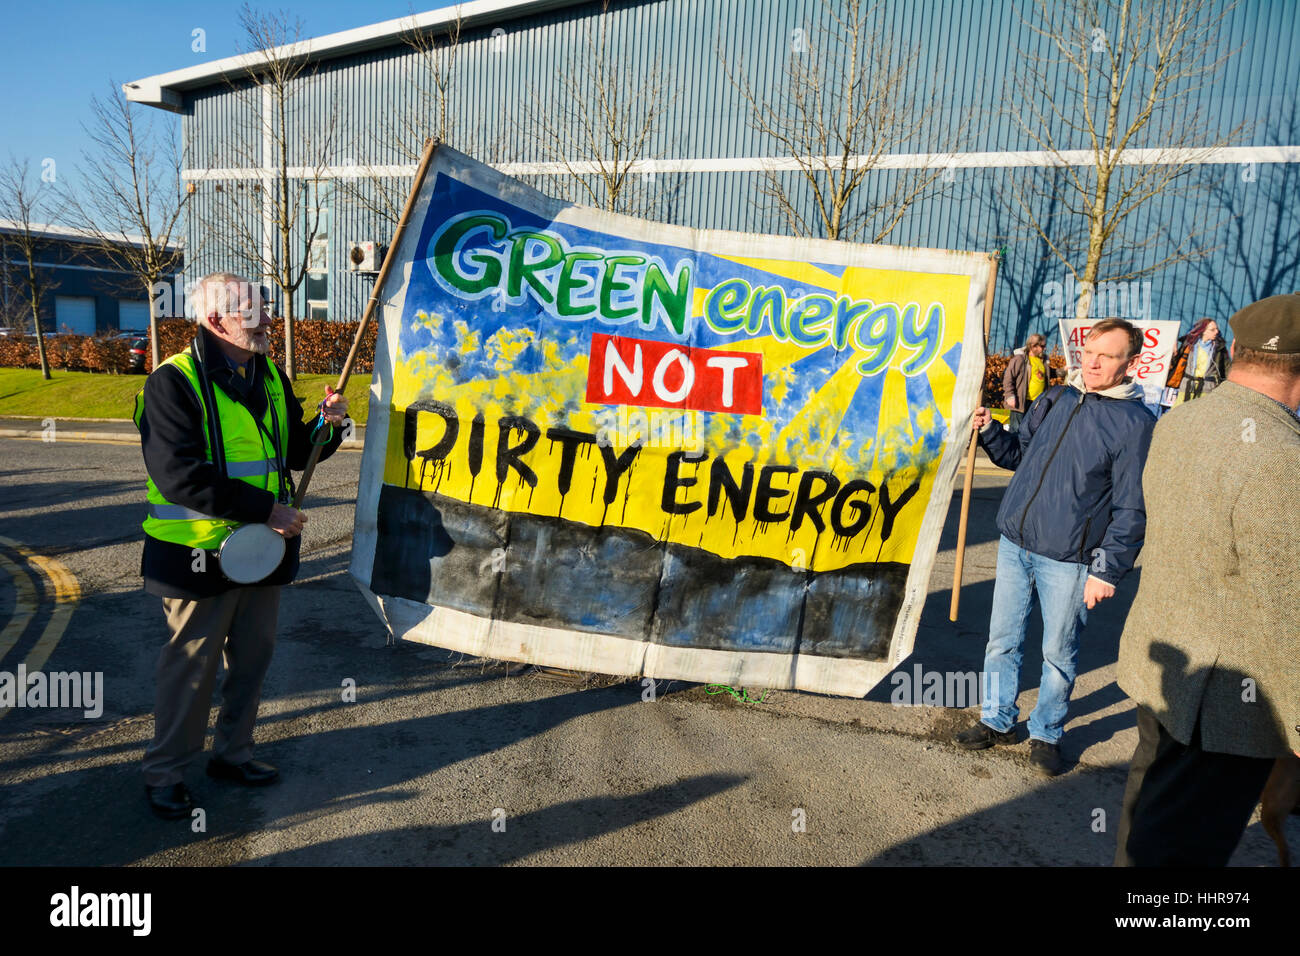 Bolton, Lancashire, UK. 20th January 2017: A small group of protesters blocked the entrance to A E Yates business - Stock Image